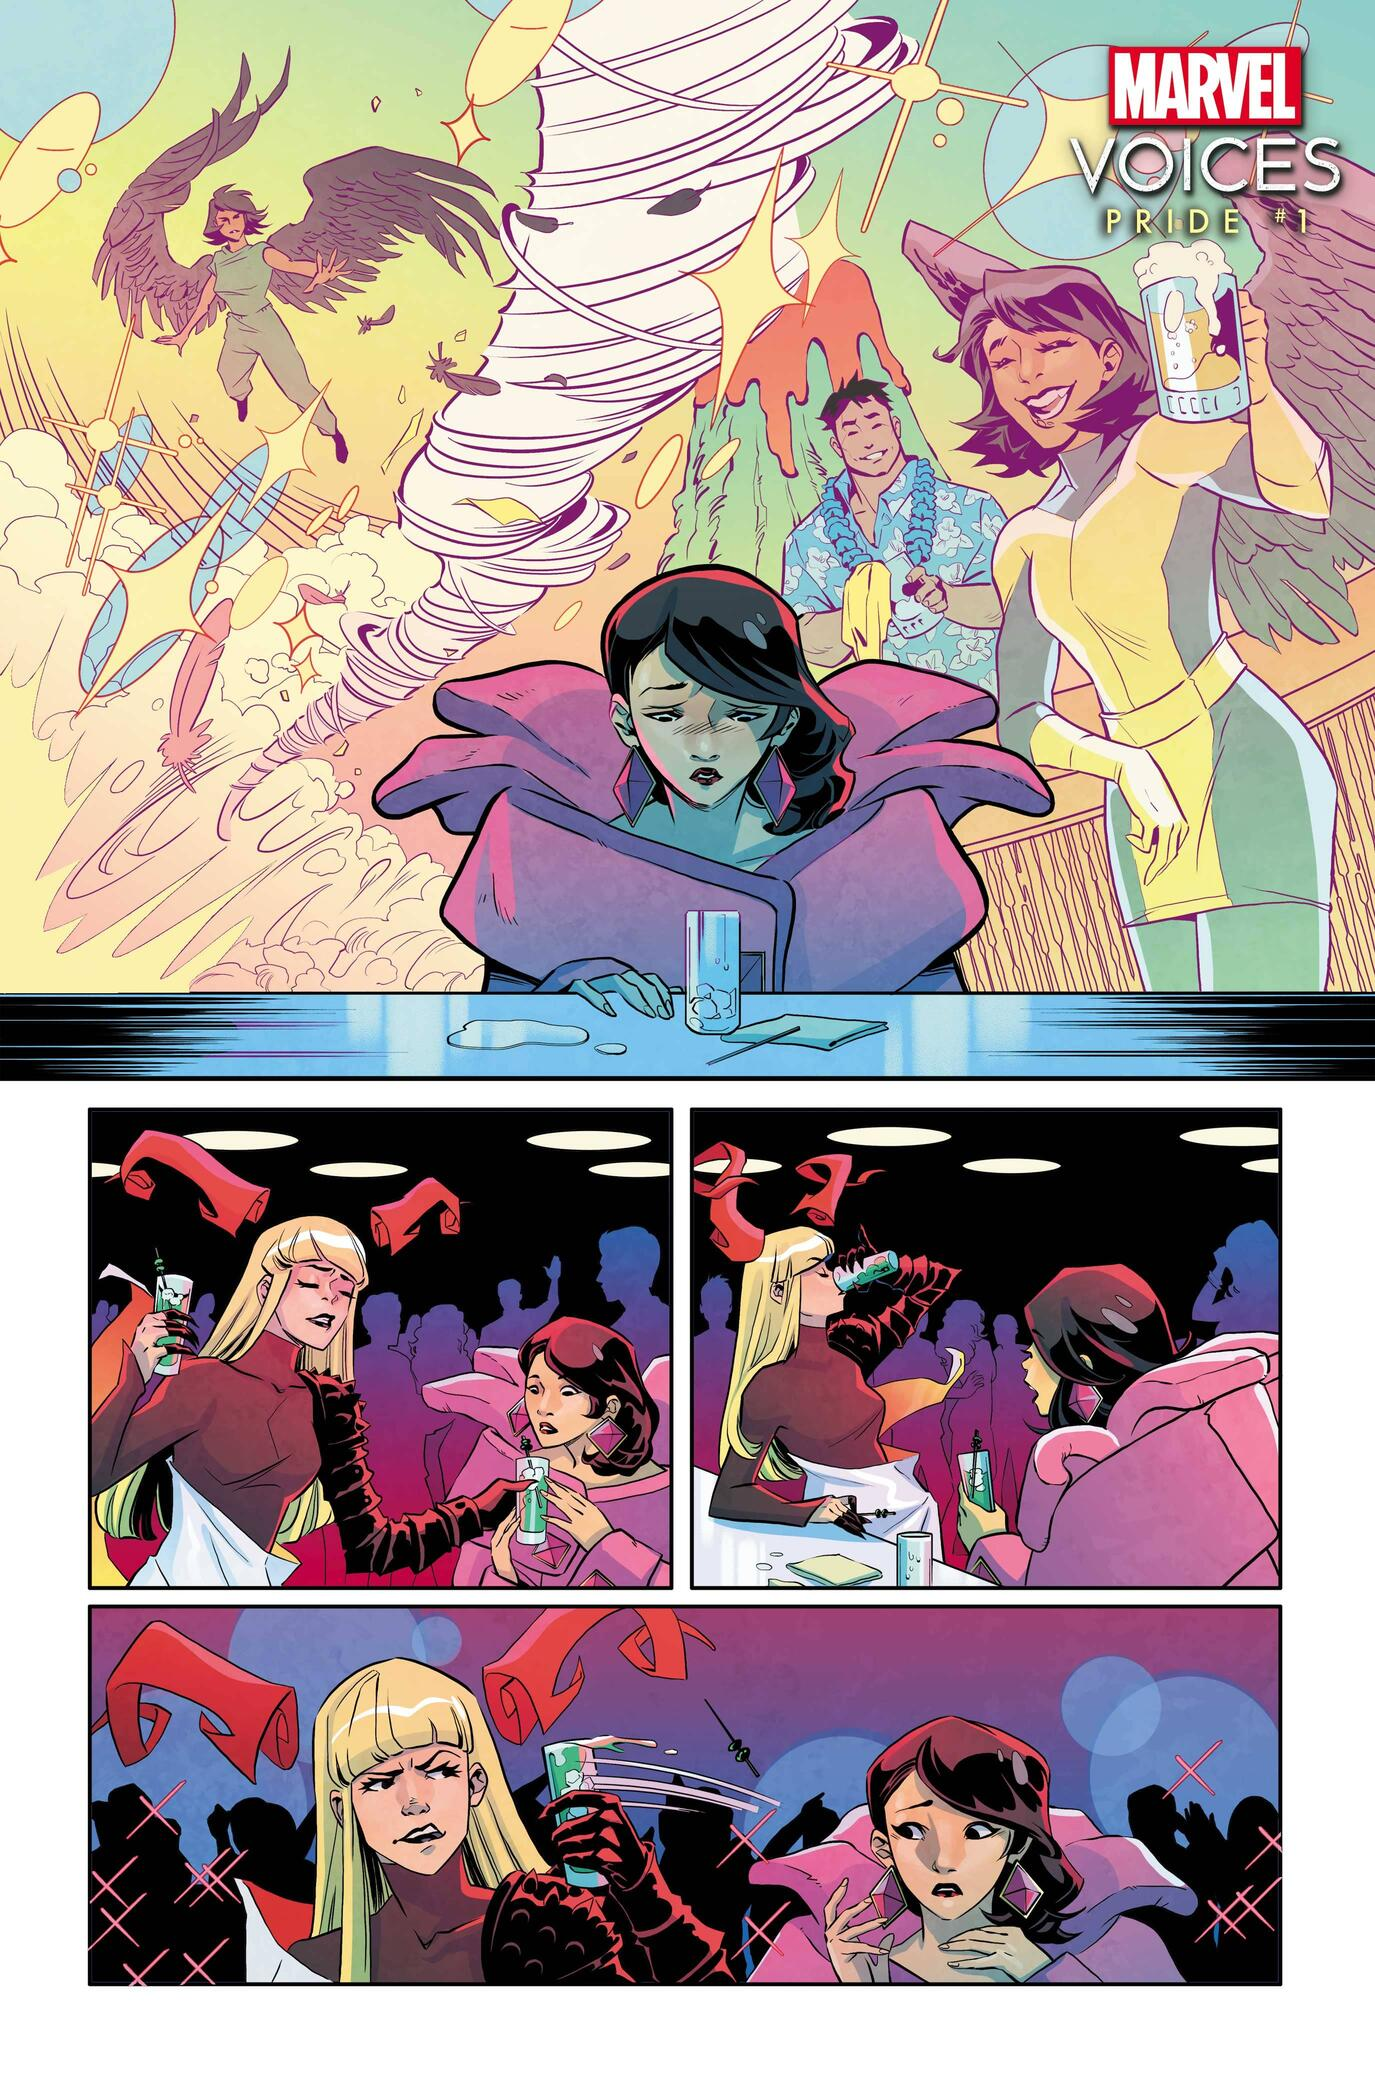 MARVEL'S VOICES: PRIDE #1 preview art by Joanna Estep, layouts by Brittney Williams, colors by Brittany Peer